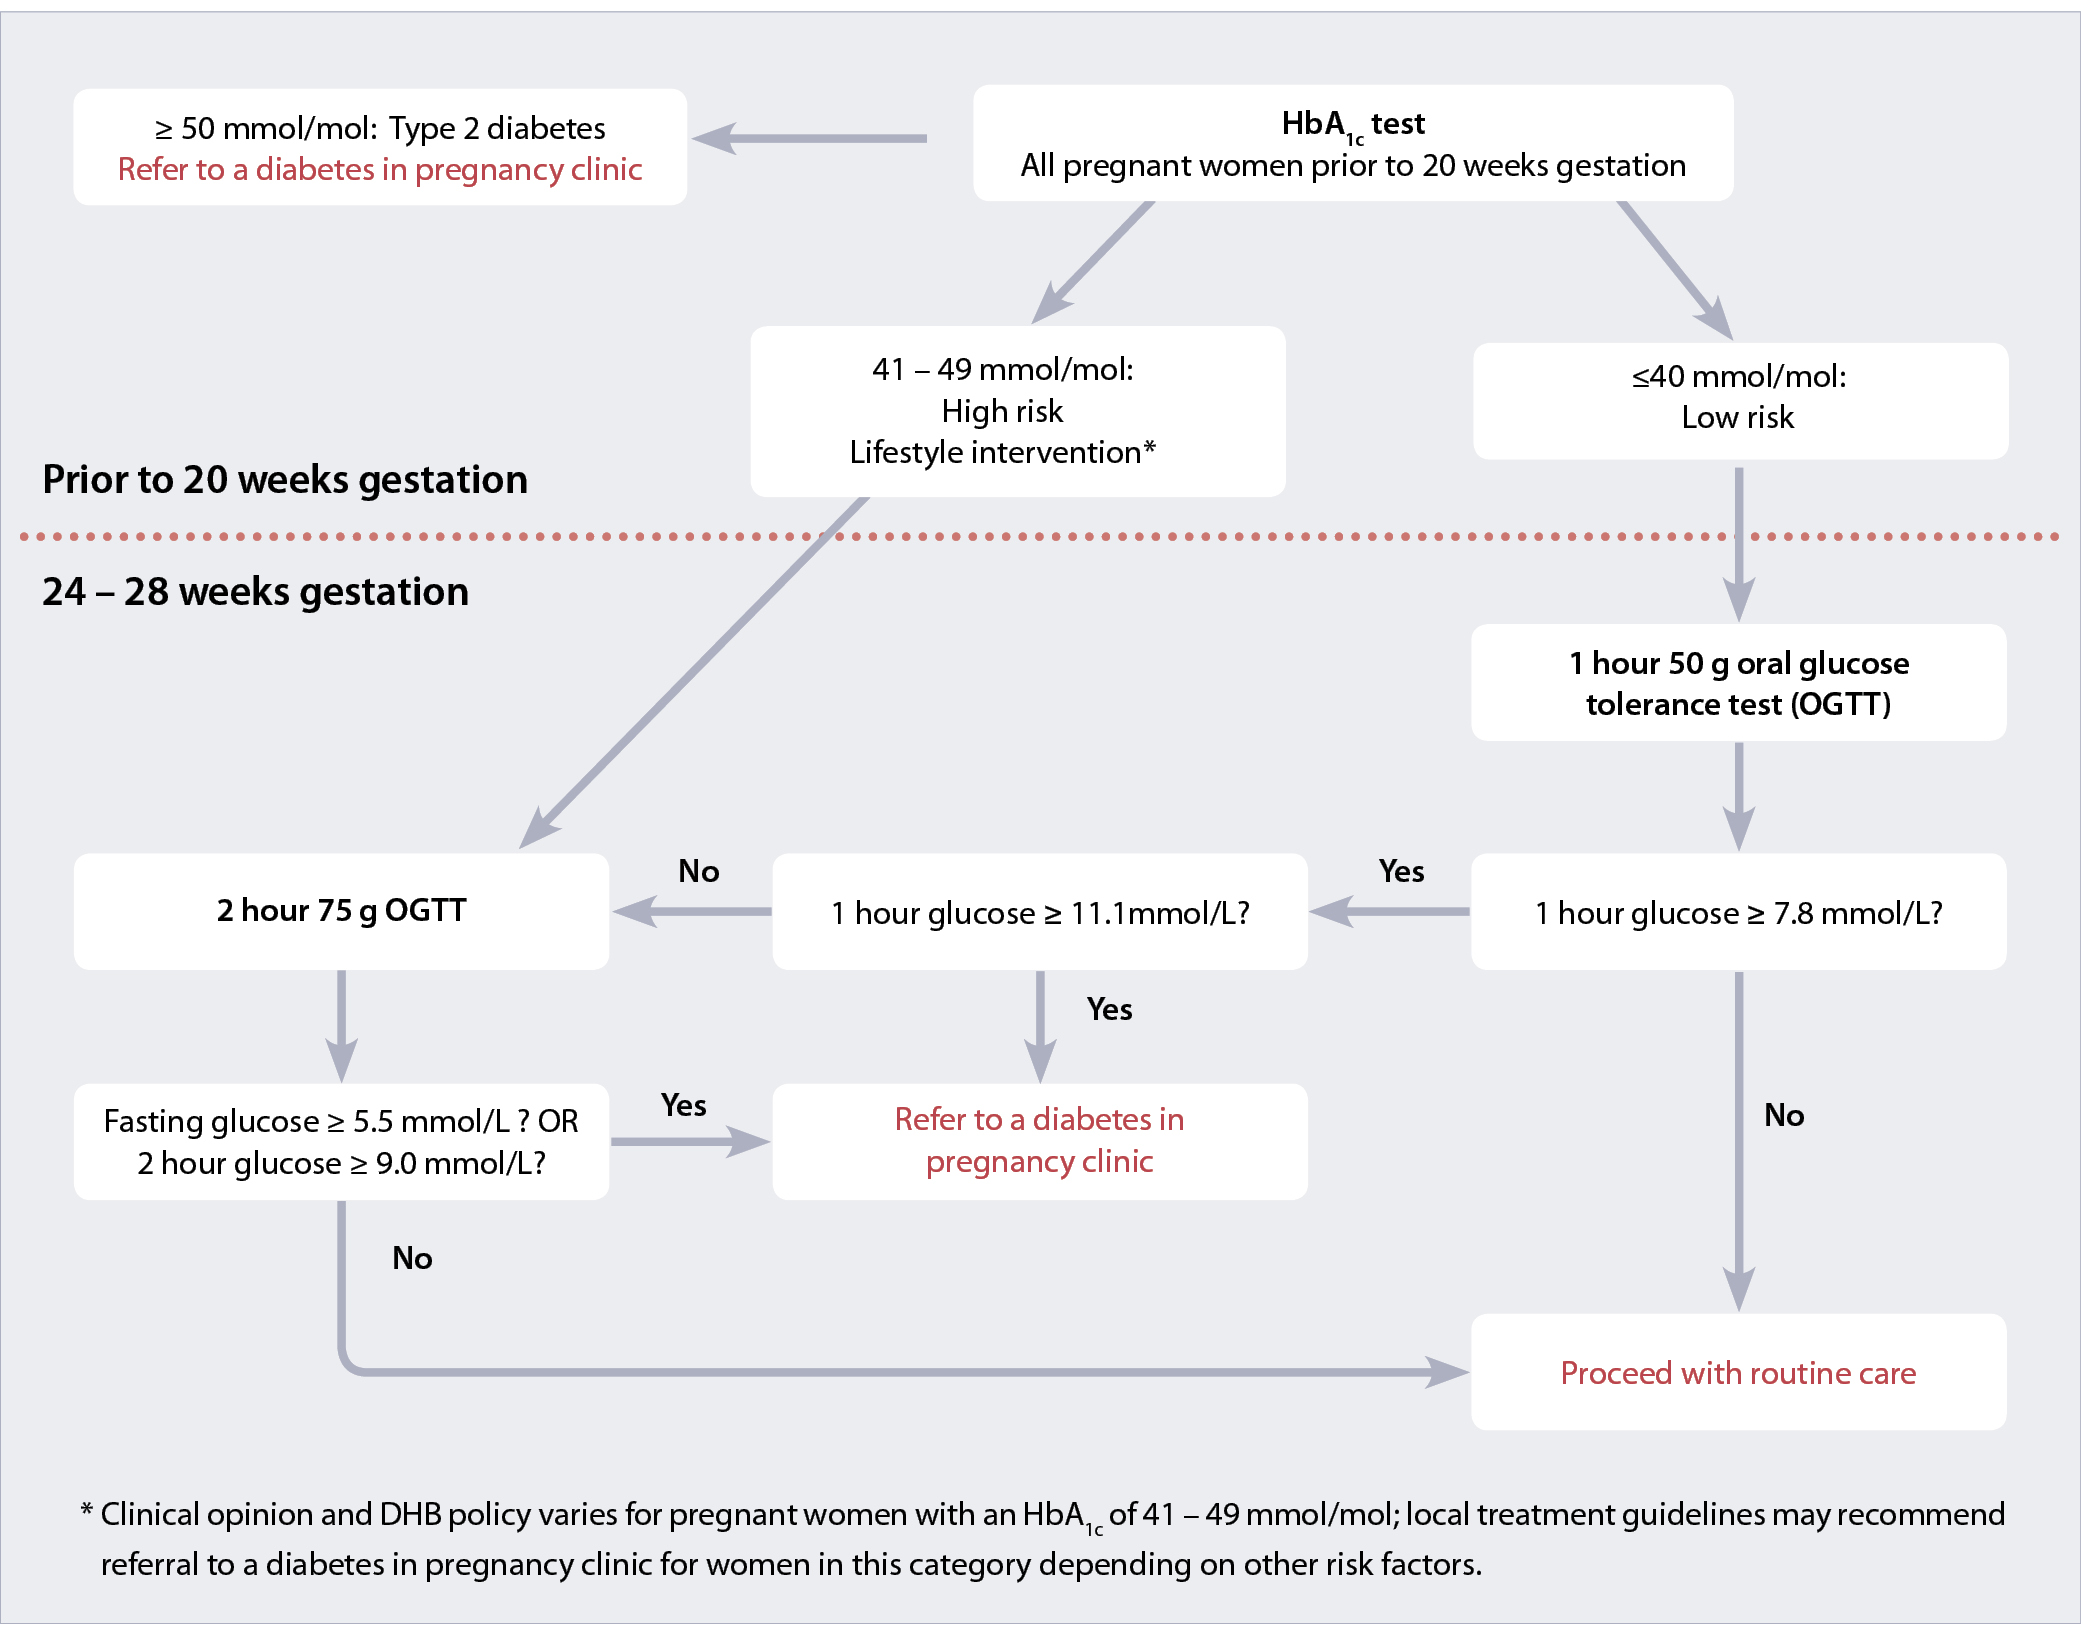 Figure 1: Screening and testing pathways for diagnosing diabetes in  pregnancy4